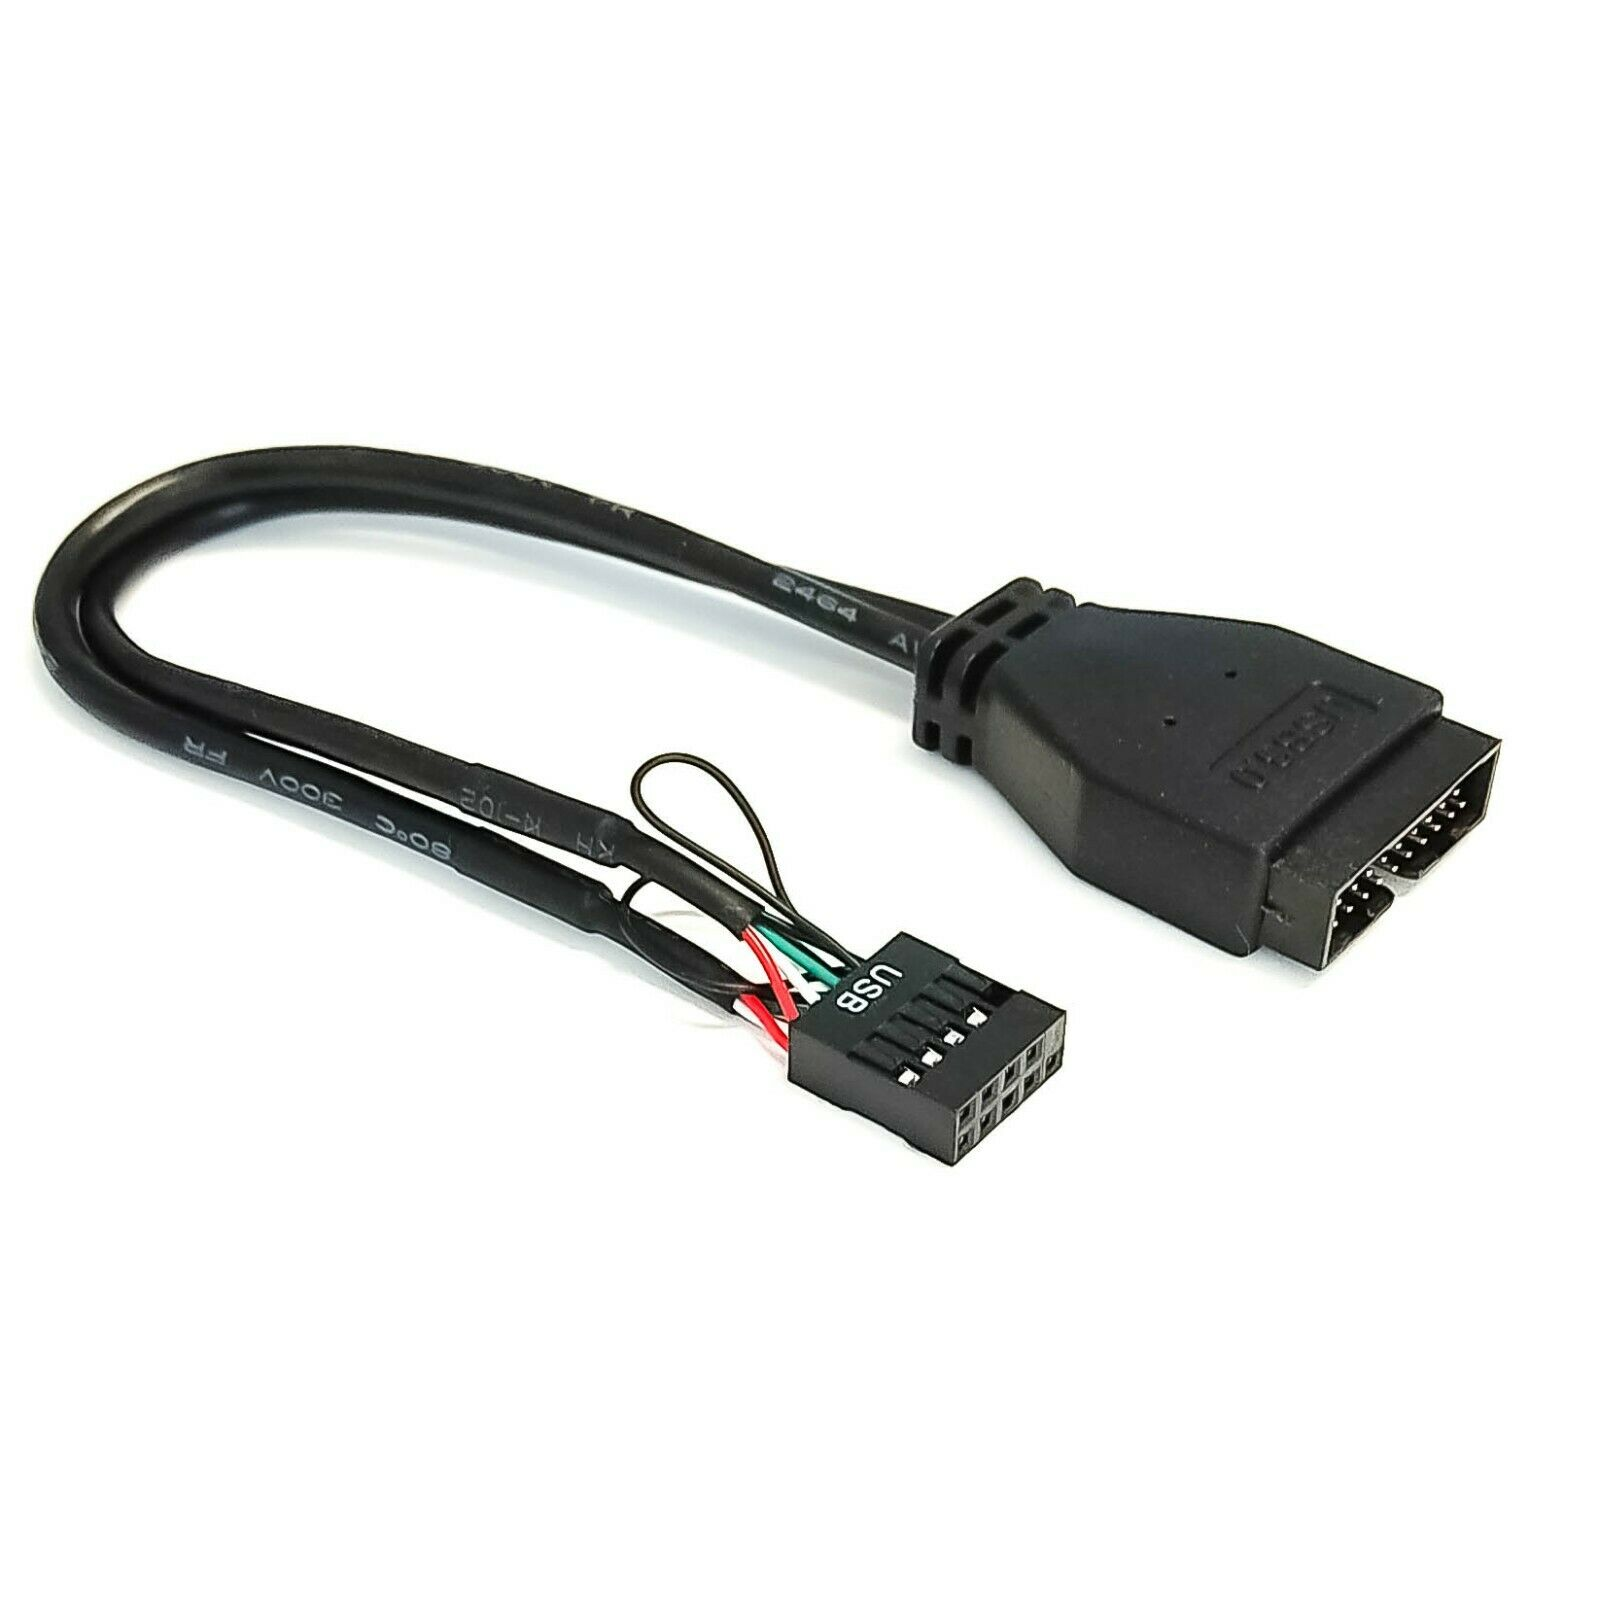 Mainboard USB 3.0 19Pin Header Switch to USB 3.0 Dual Port Bezel USB 3.0 Female Hub Extension 82cm Dual Cable